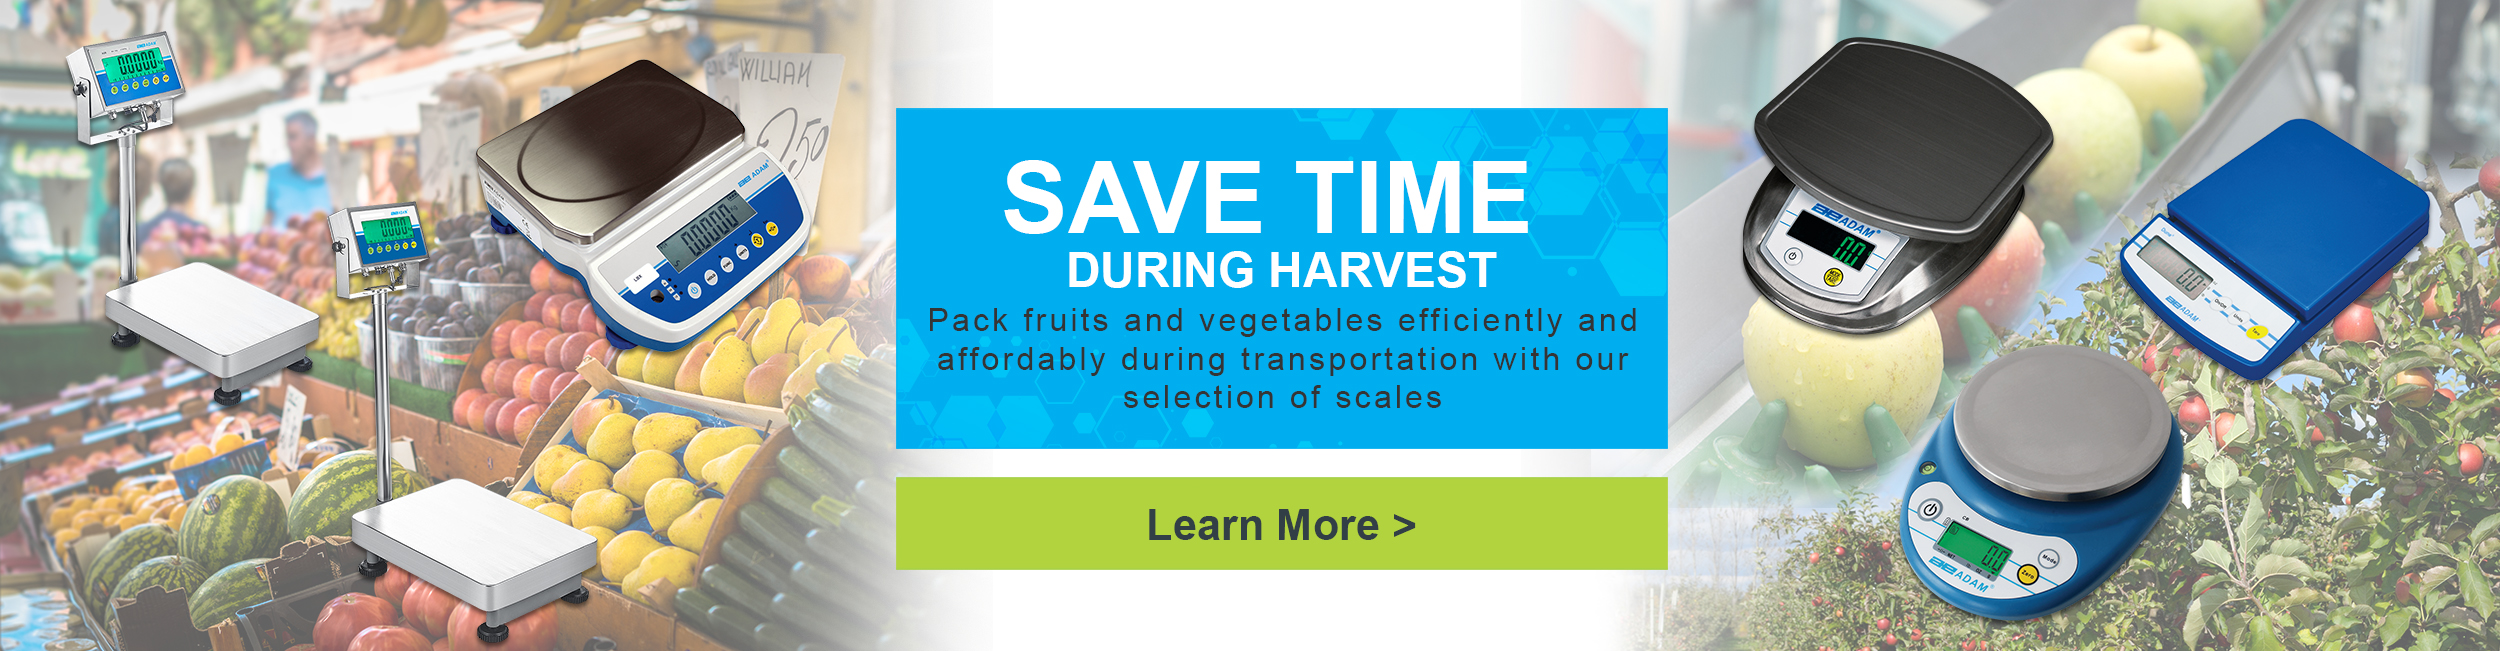 Save Time During Harvest. Pack fruits and vegetables efficiently and affordably during transportation with our selection of scales